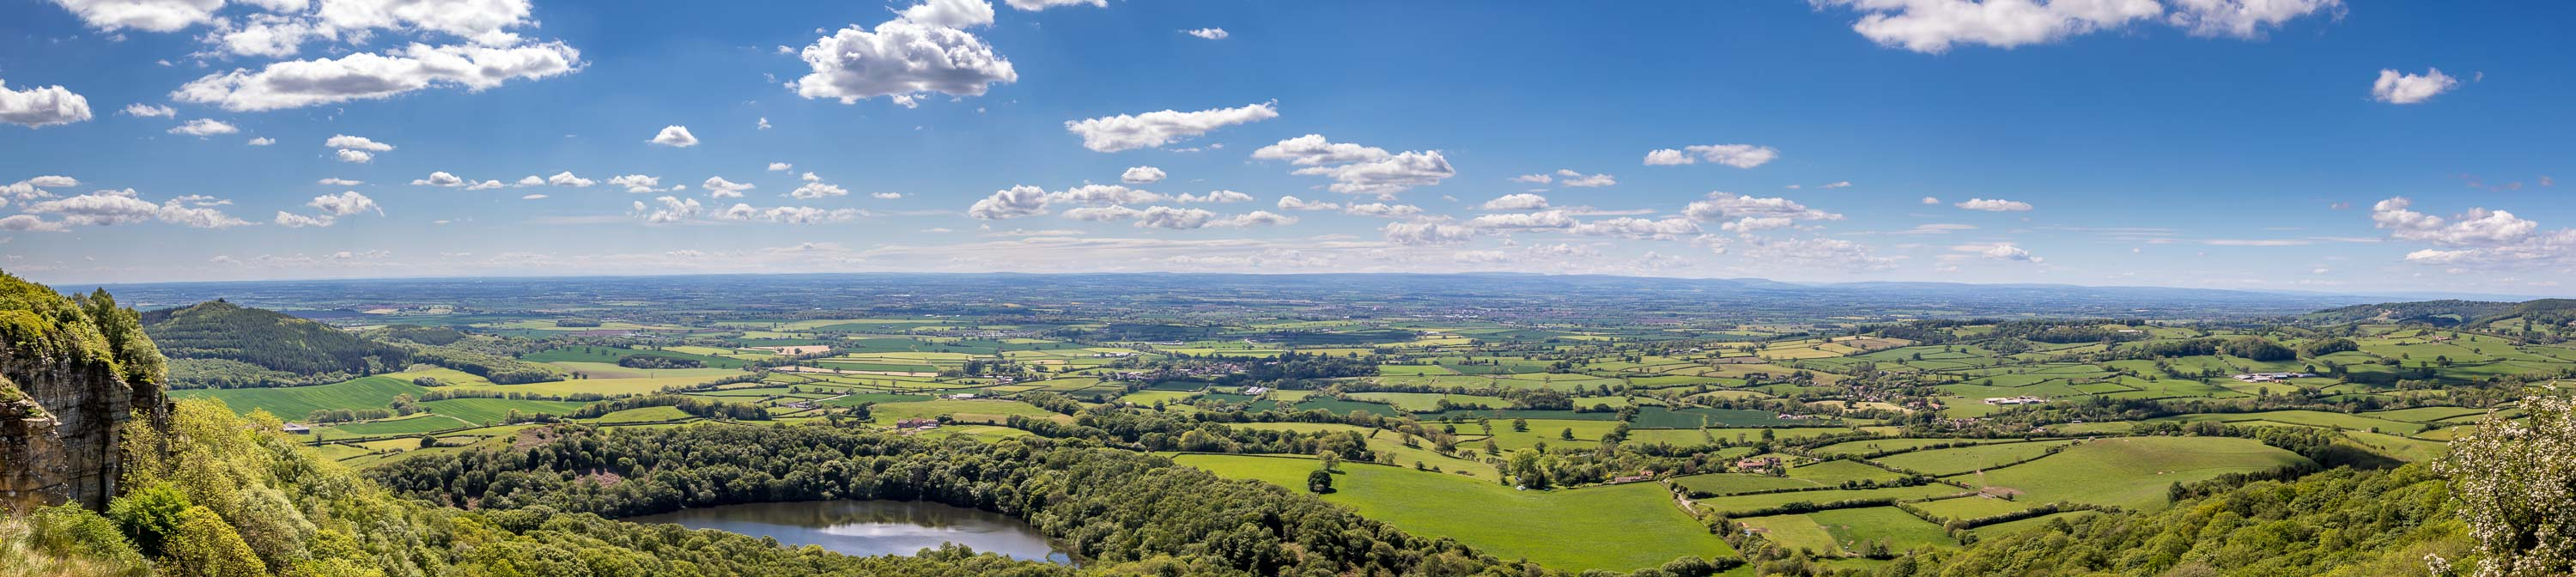 Sutton Bank panorama